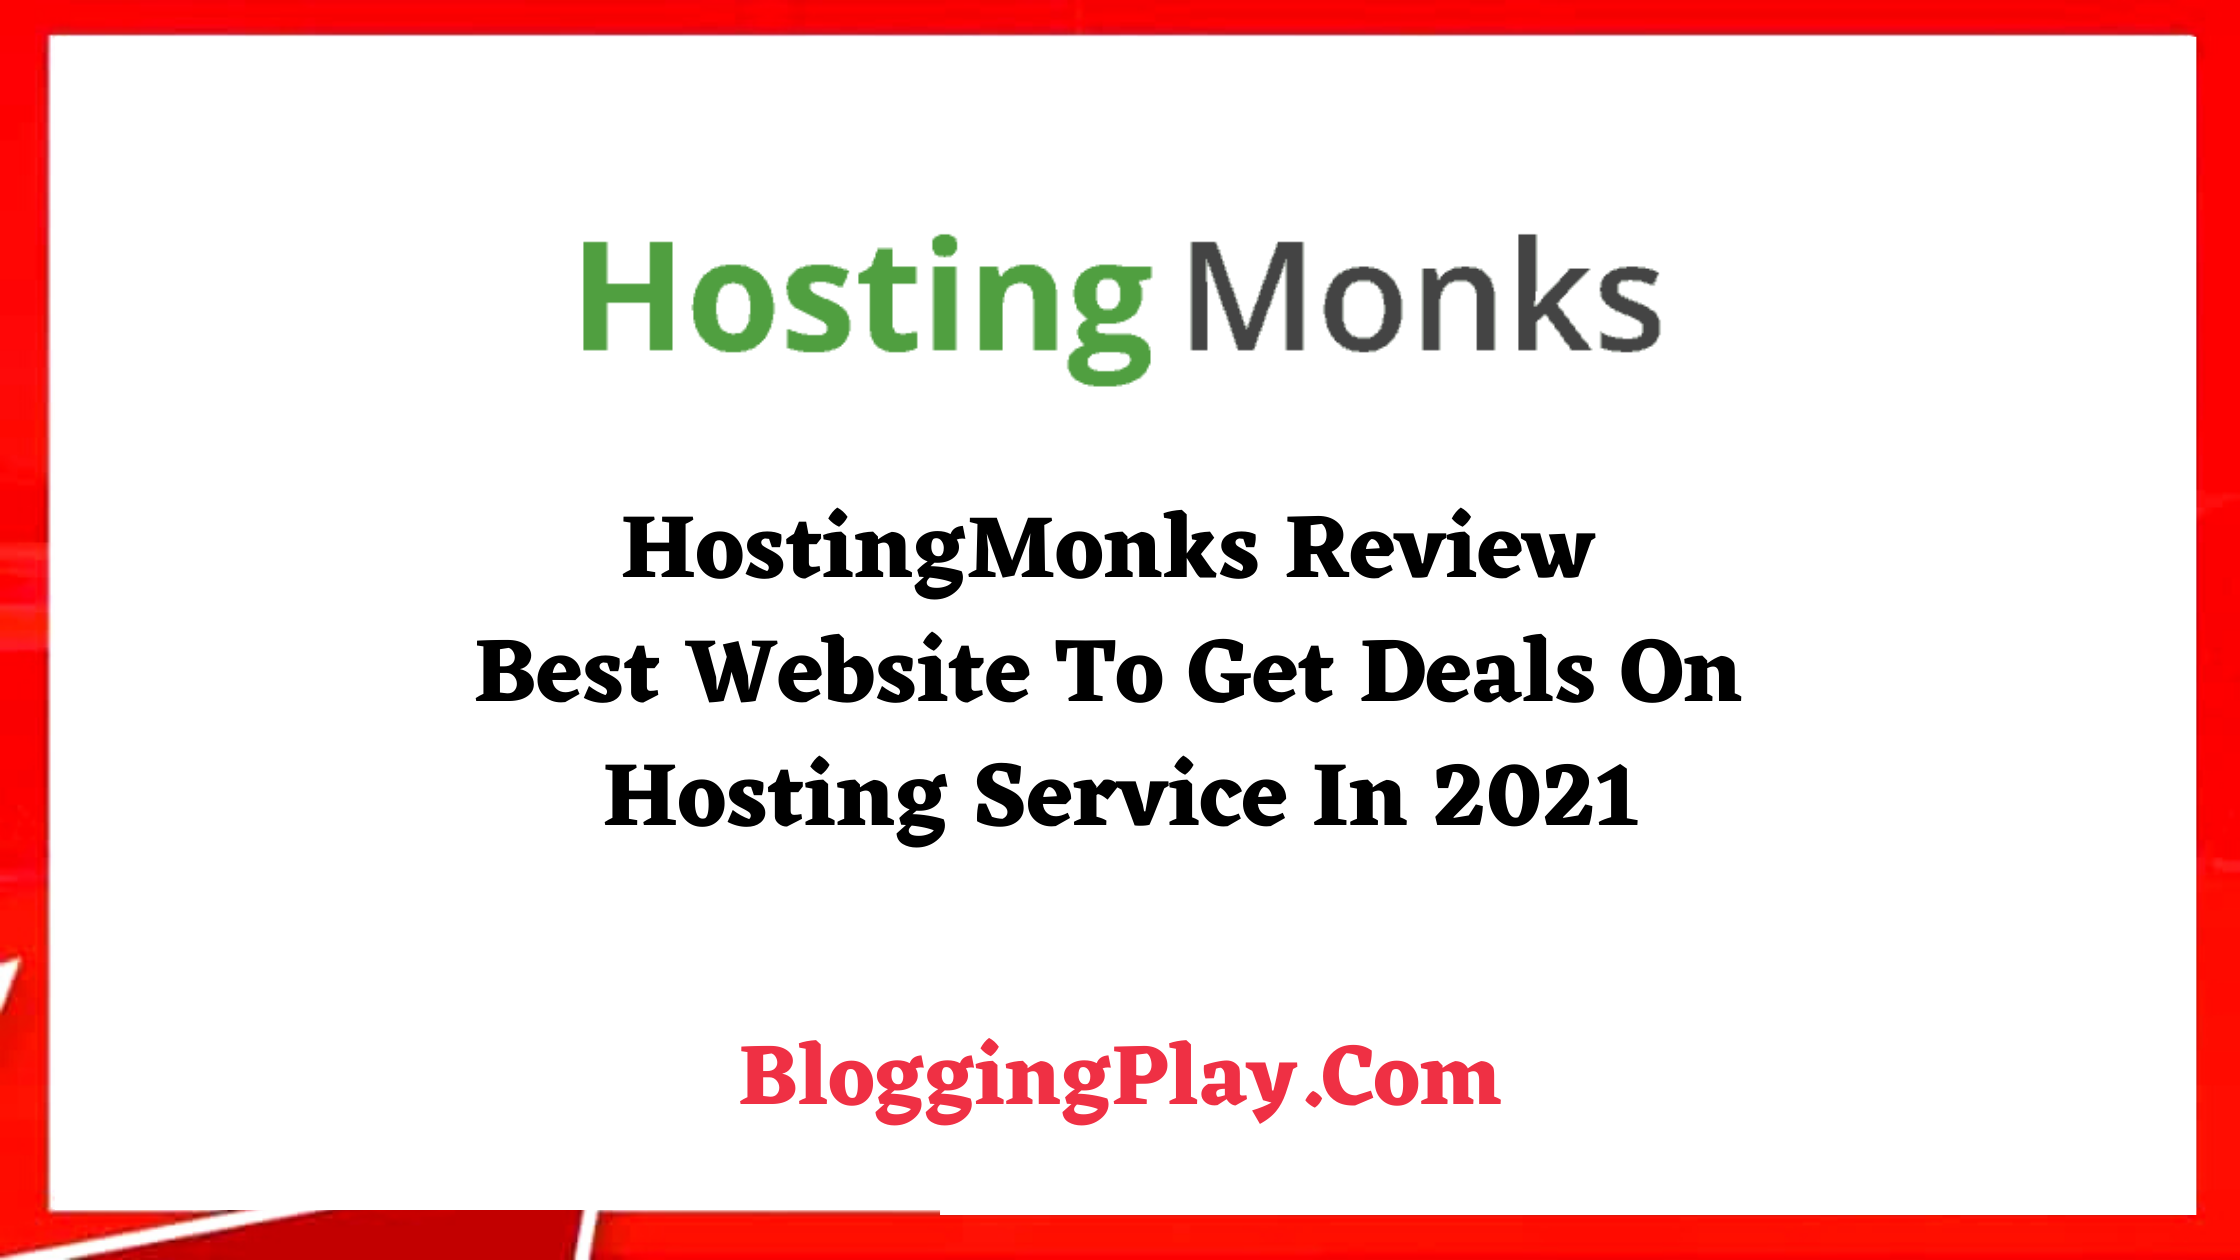 HostingMonks Review On BloggingPlay